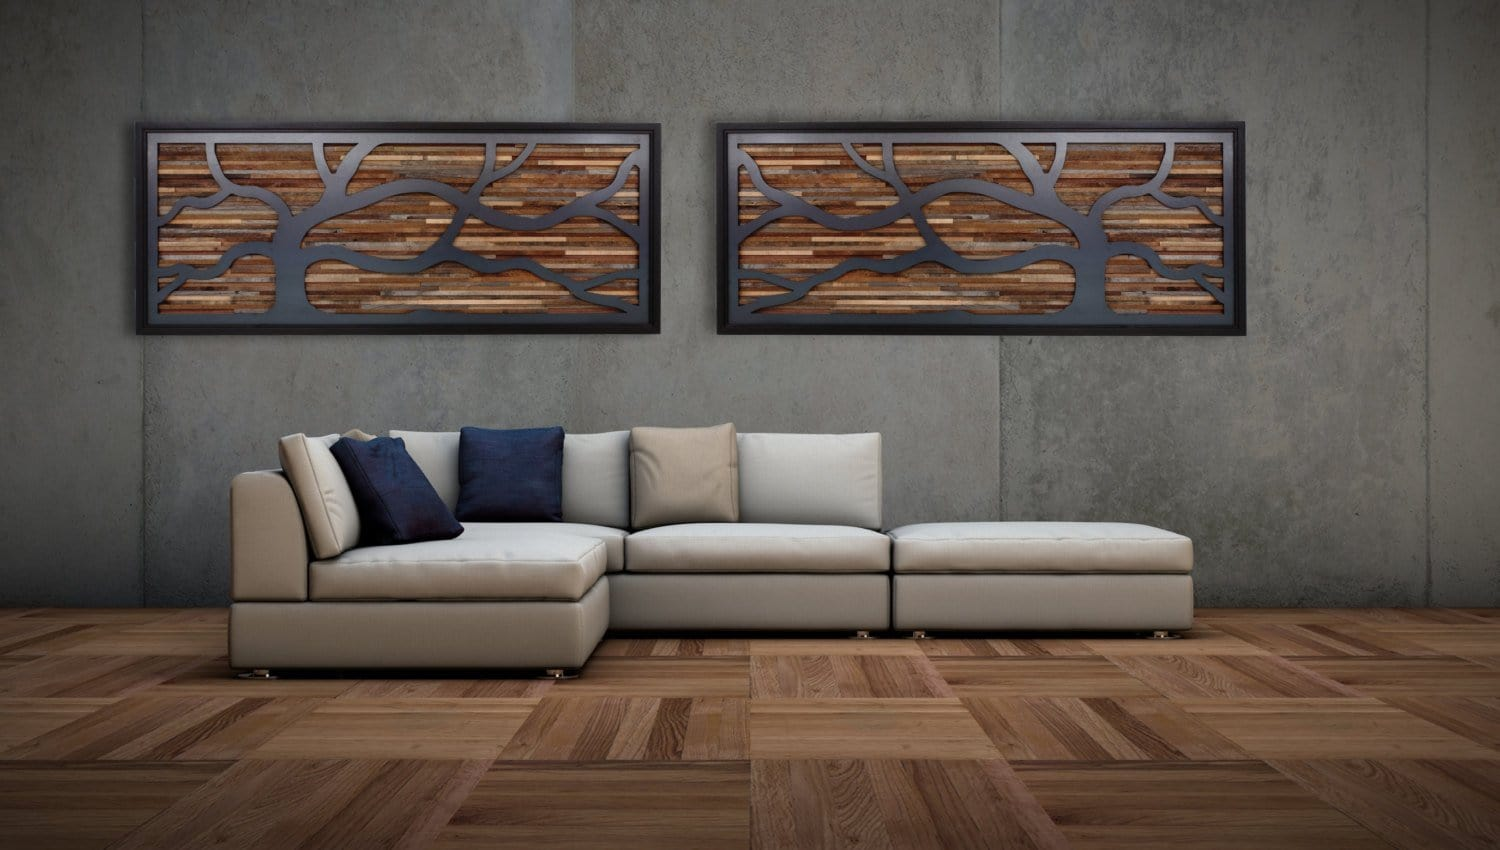 wind swept tree art, metal & wood wall art